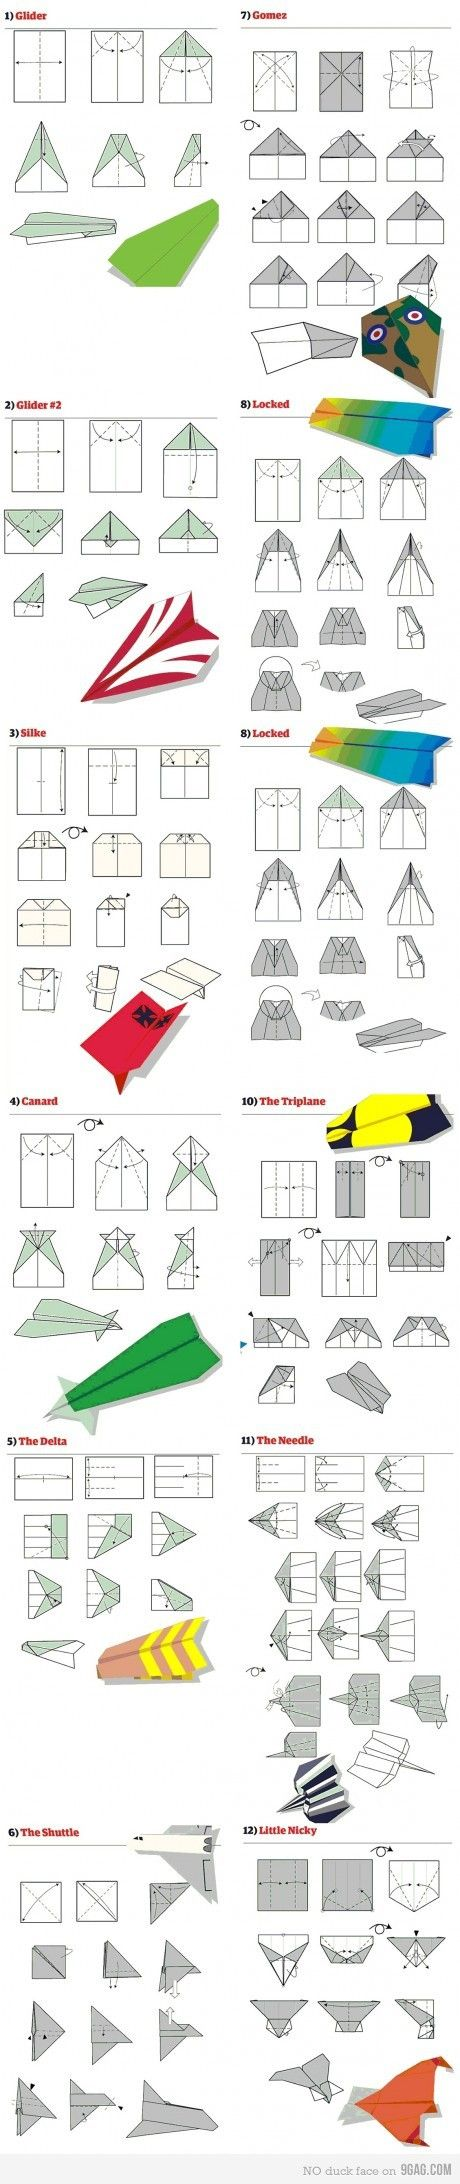 How to make awesome paper airplanes